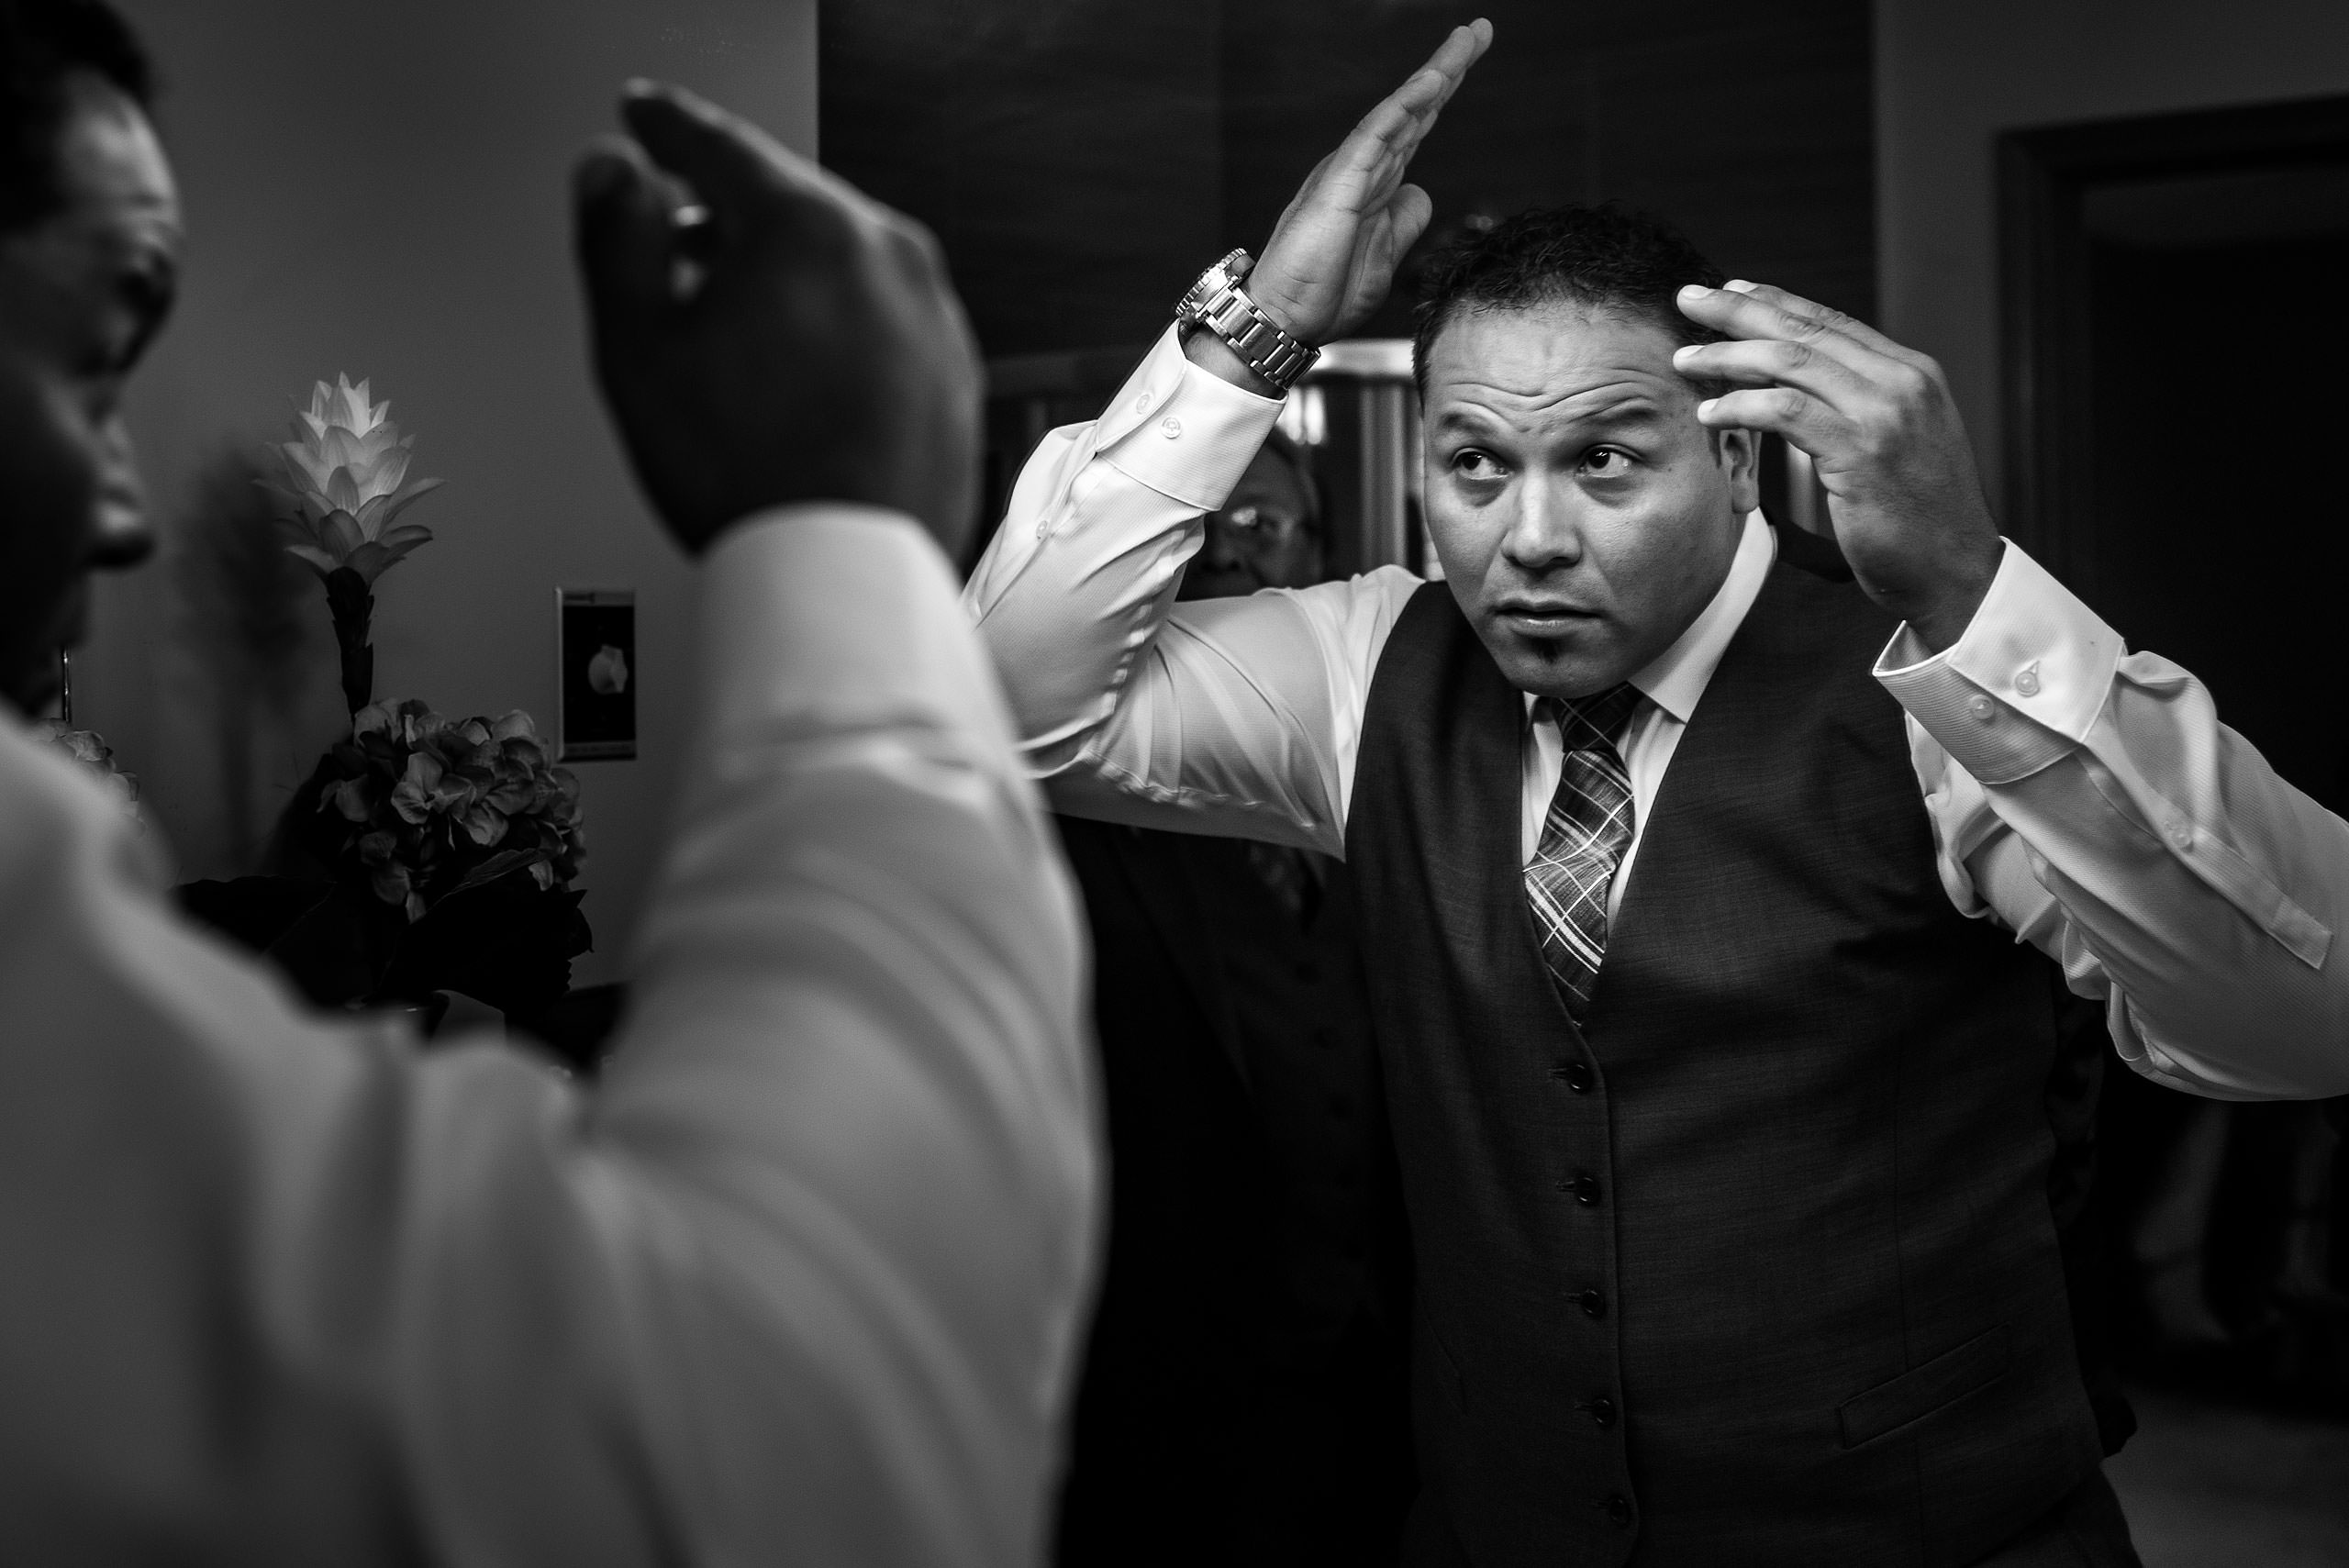 A groom getting ready by combing his hair by Edmonton wedding photographer sean leblanc